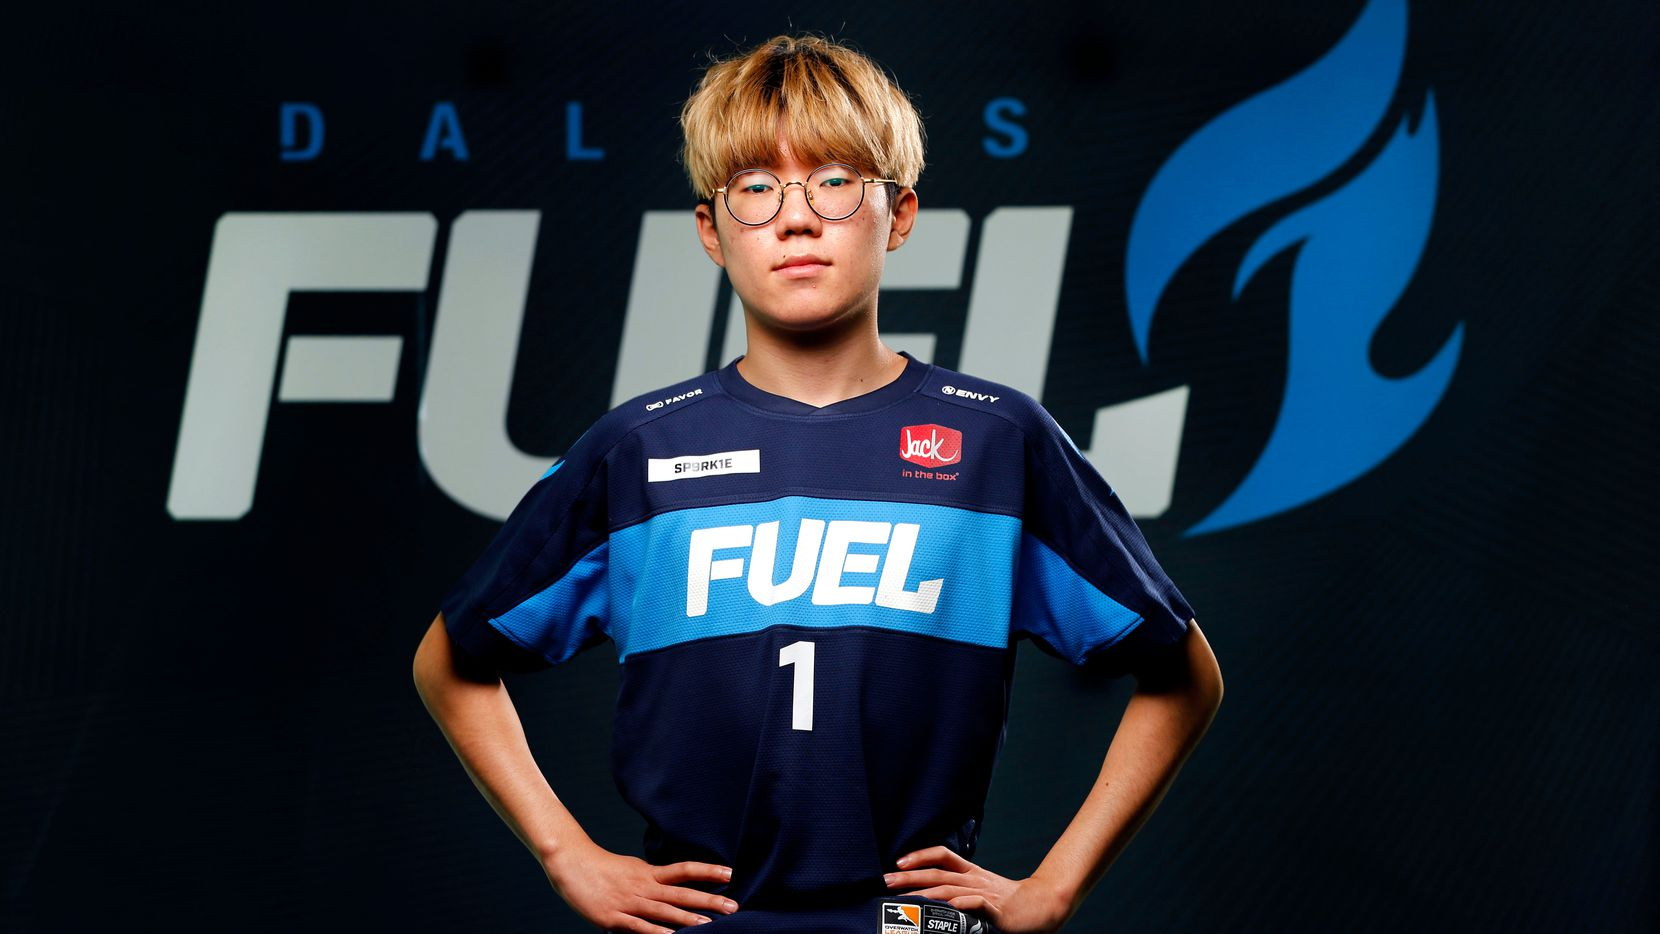 Dallas Fuel Overwatch League player Yeonghan 'SP9RK1E' Kim poses for a photo at Envy Gaming Headquarters in Dallas, Monday, March 29, 2021. (Tom Fox/The Dallas Morning News)